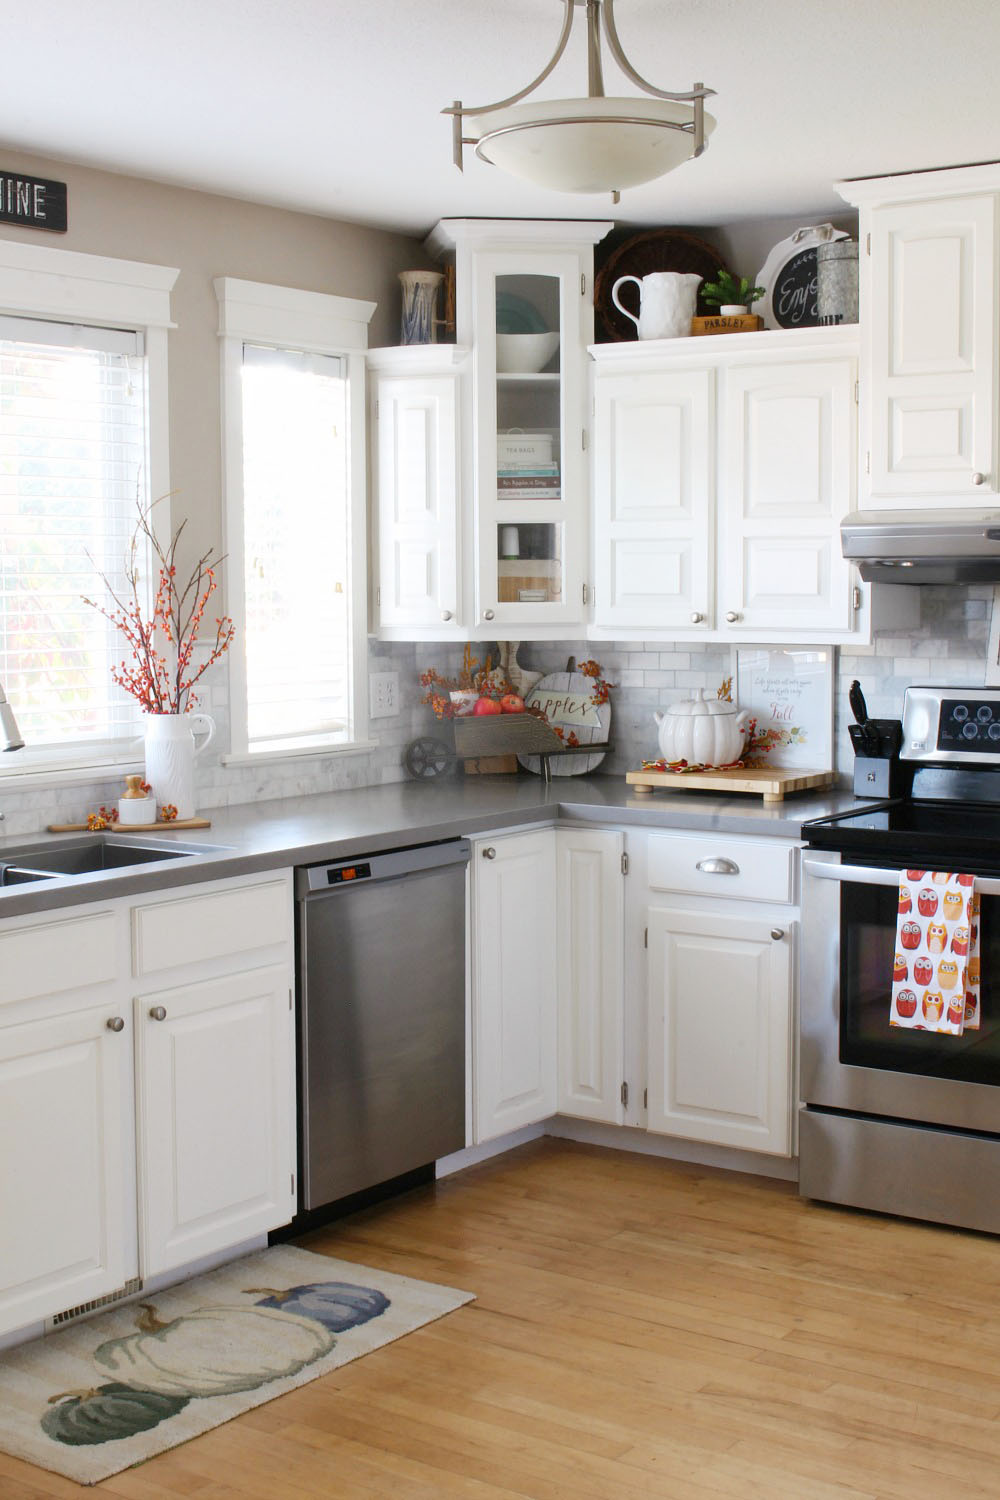 Kitchen Fall Home Tour. Lots of fall decor ideas to decorate your kitchen or apply to other areas of your home.